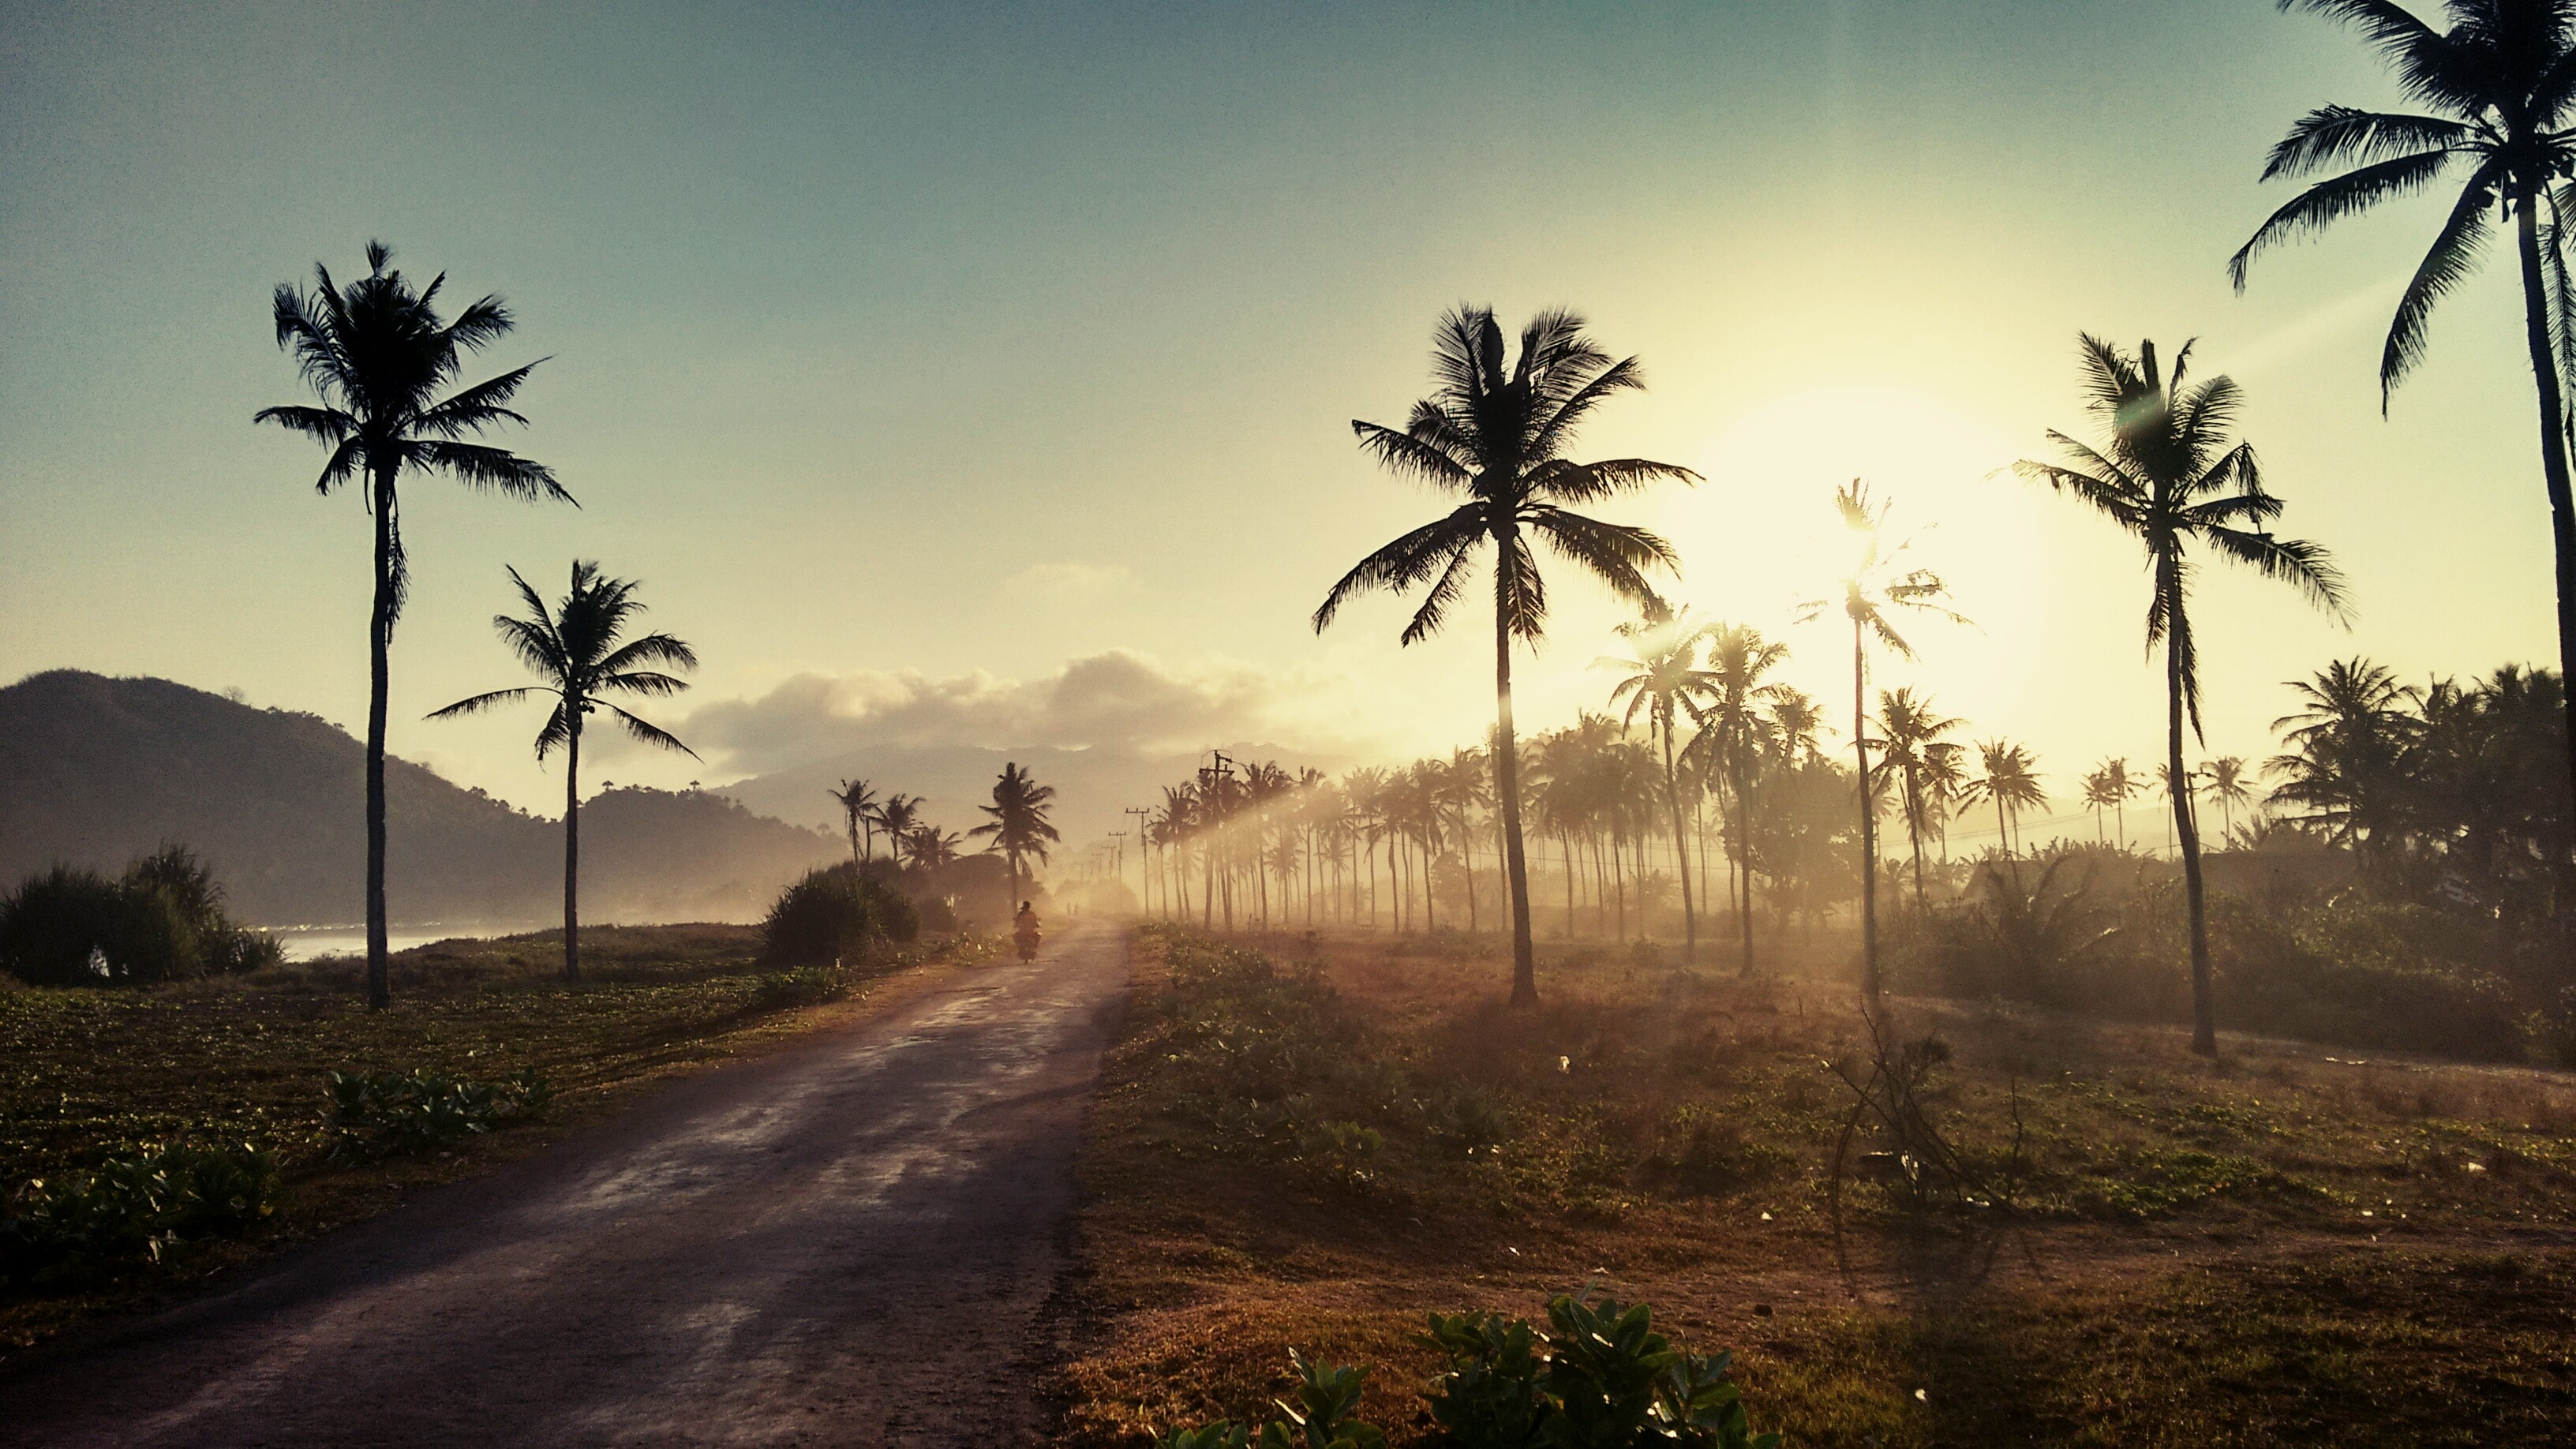 Dirt road between palm trees in East Java, Indonesia at sunset